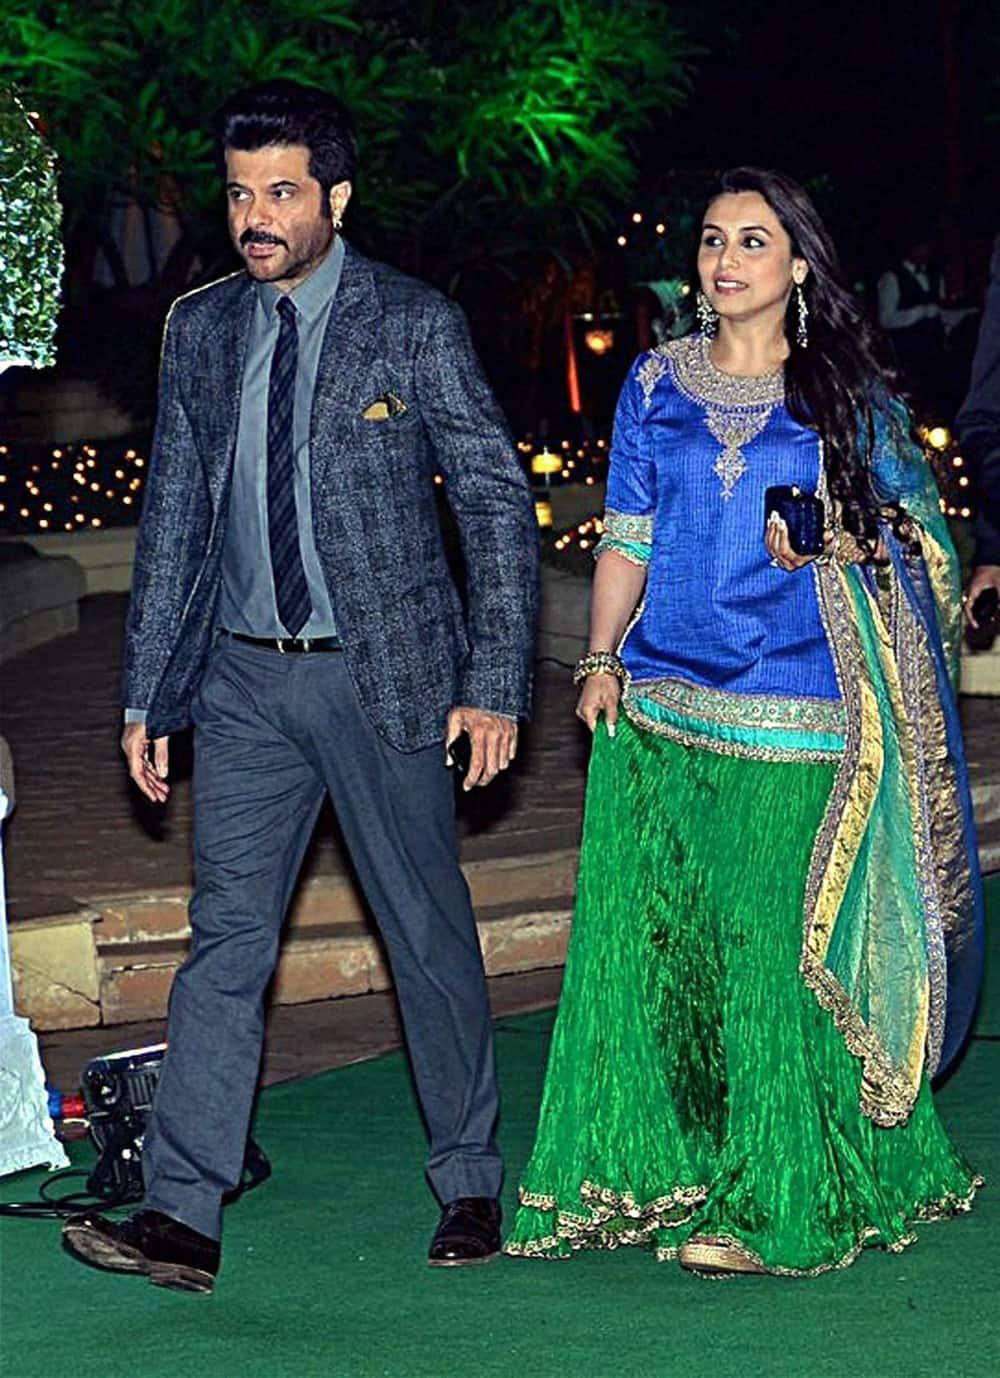 Rani Mukherji and Anil Kapoor at the wedding reception of Mahesh Bhatt's son Vishesh Bhatt in Mumbai.